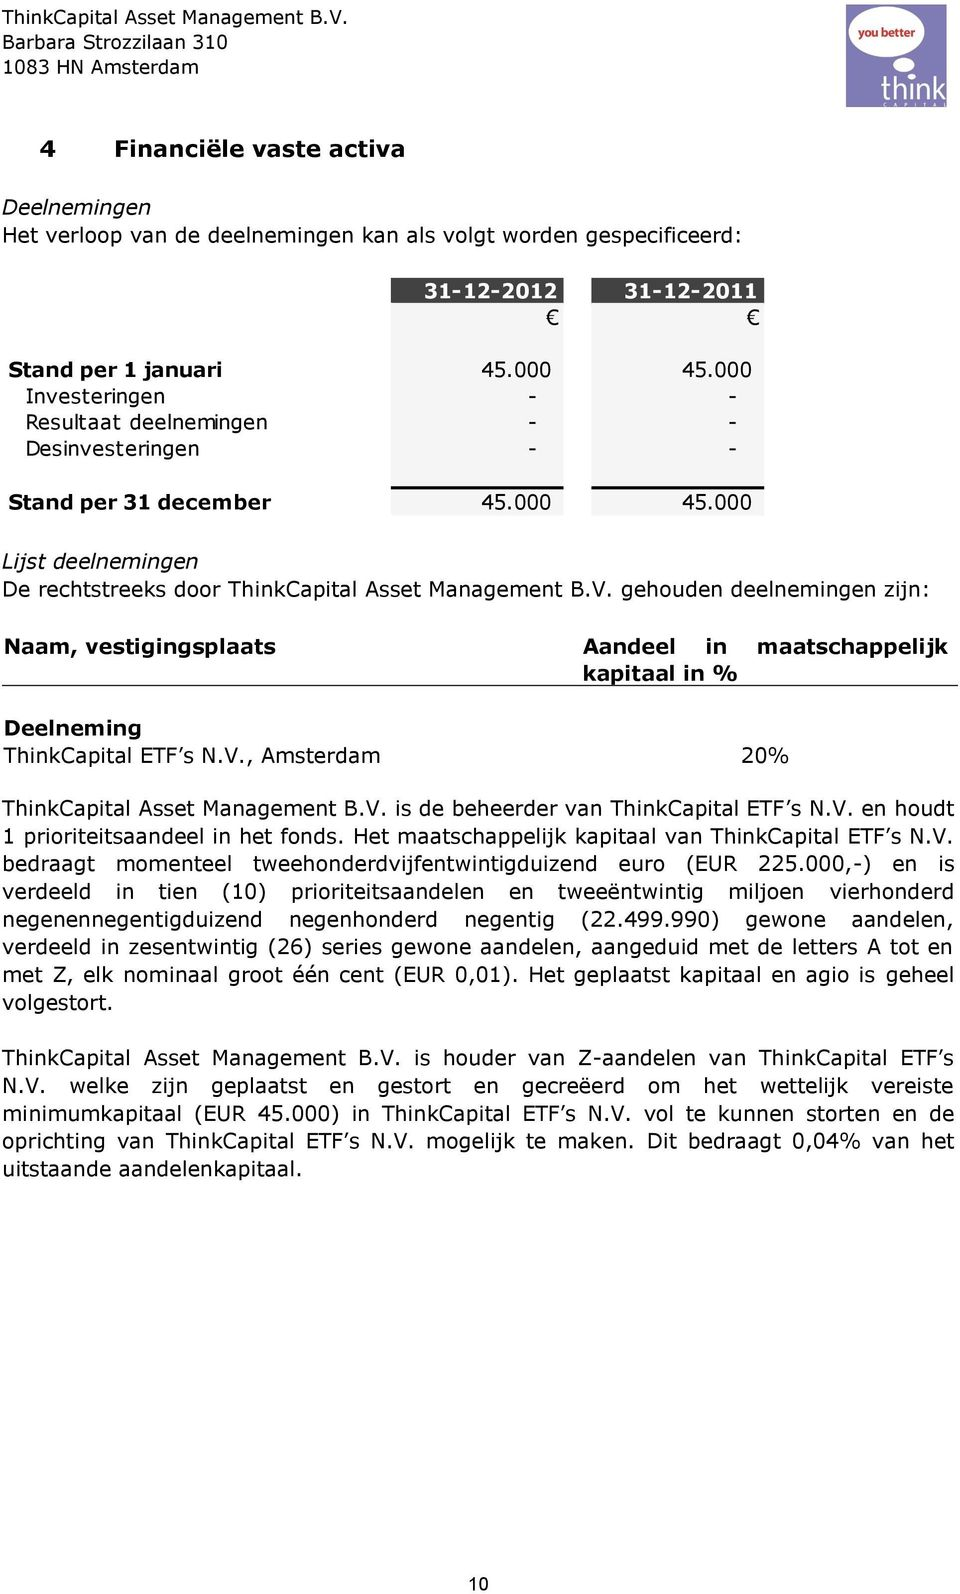 gehouden deelnemingen zijn: Naam, vestigingsplaats Aandeel in maatschappelijk kapitaal in % Deelneming ThinkCapital ETF s N.V., Amsterdam 20% ThinkCapital Asset Management B.V. is de beheerder van ThinkCapital ETF s N.